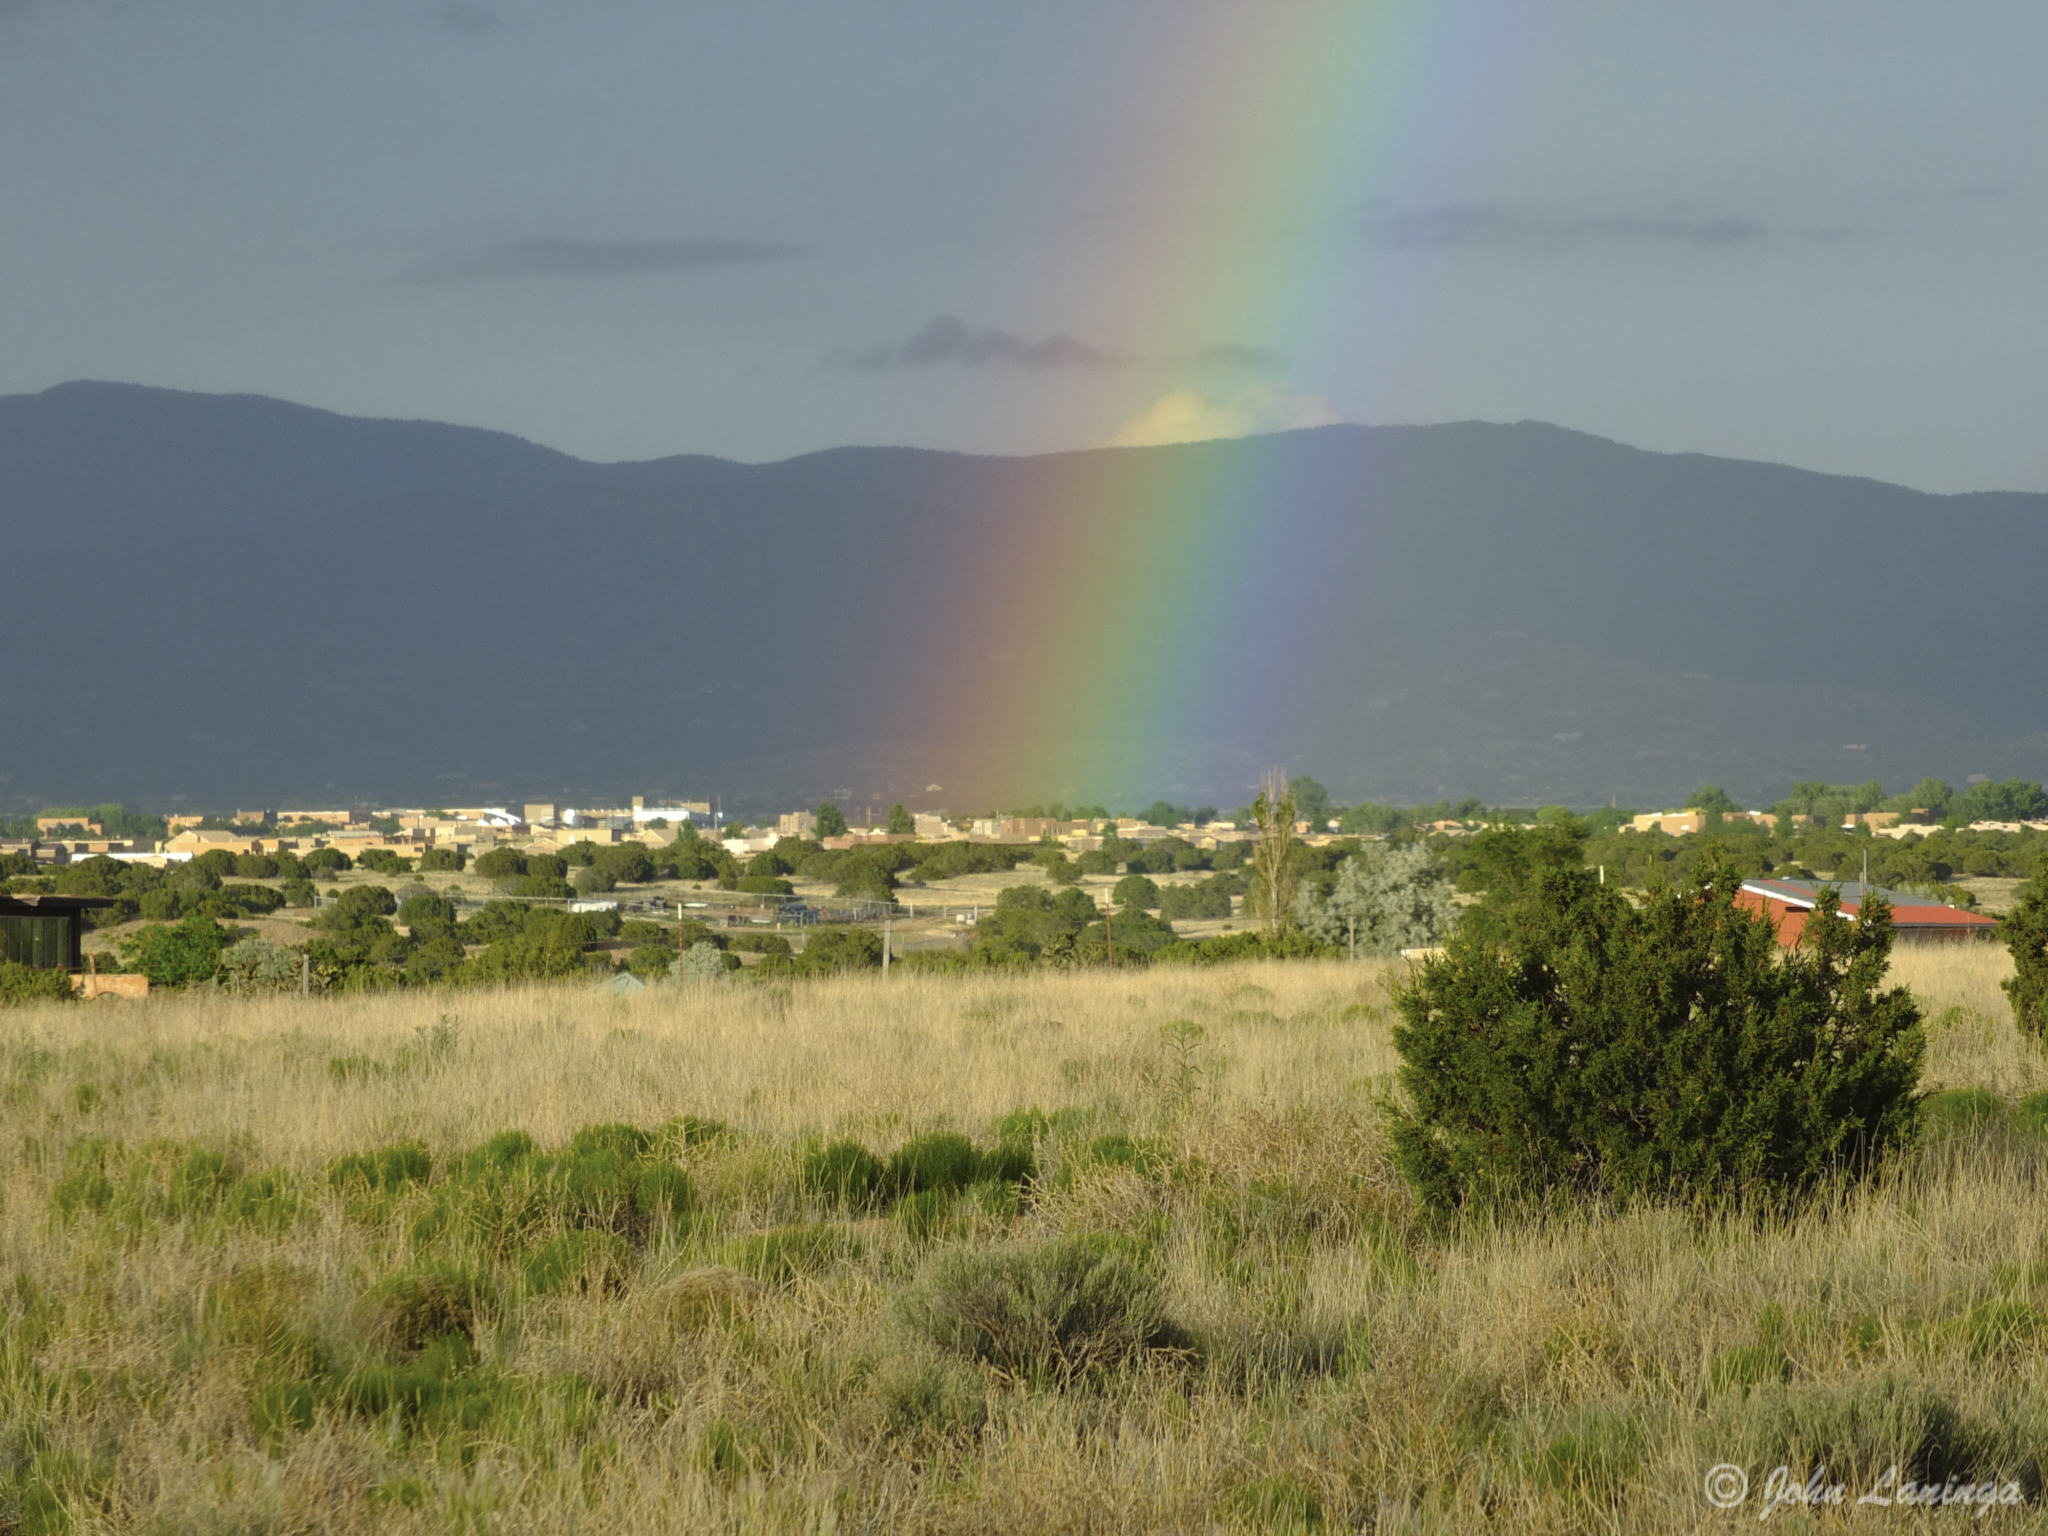 A rainbow over the foothills